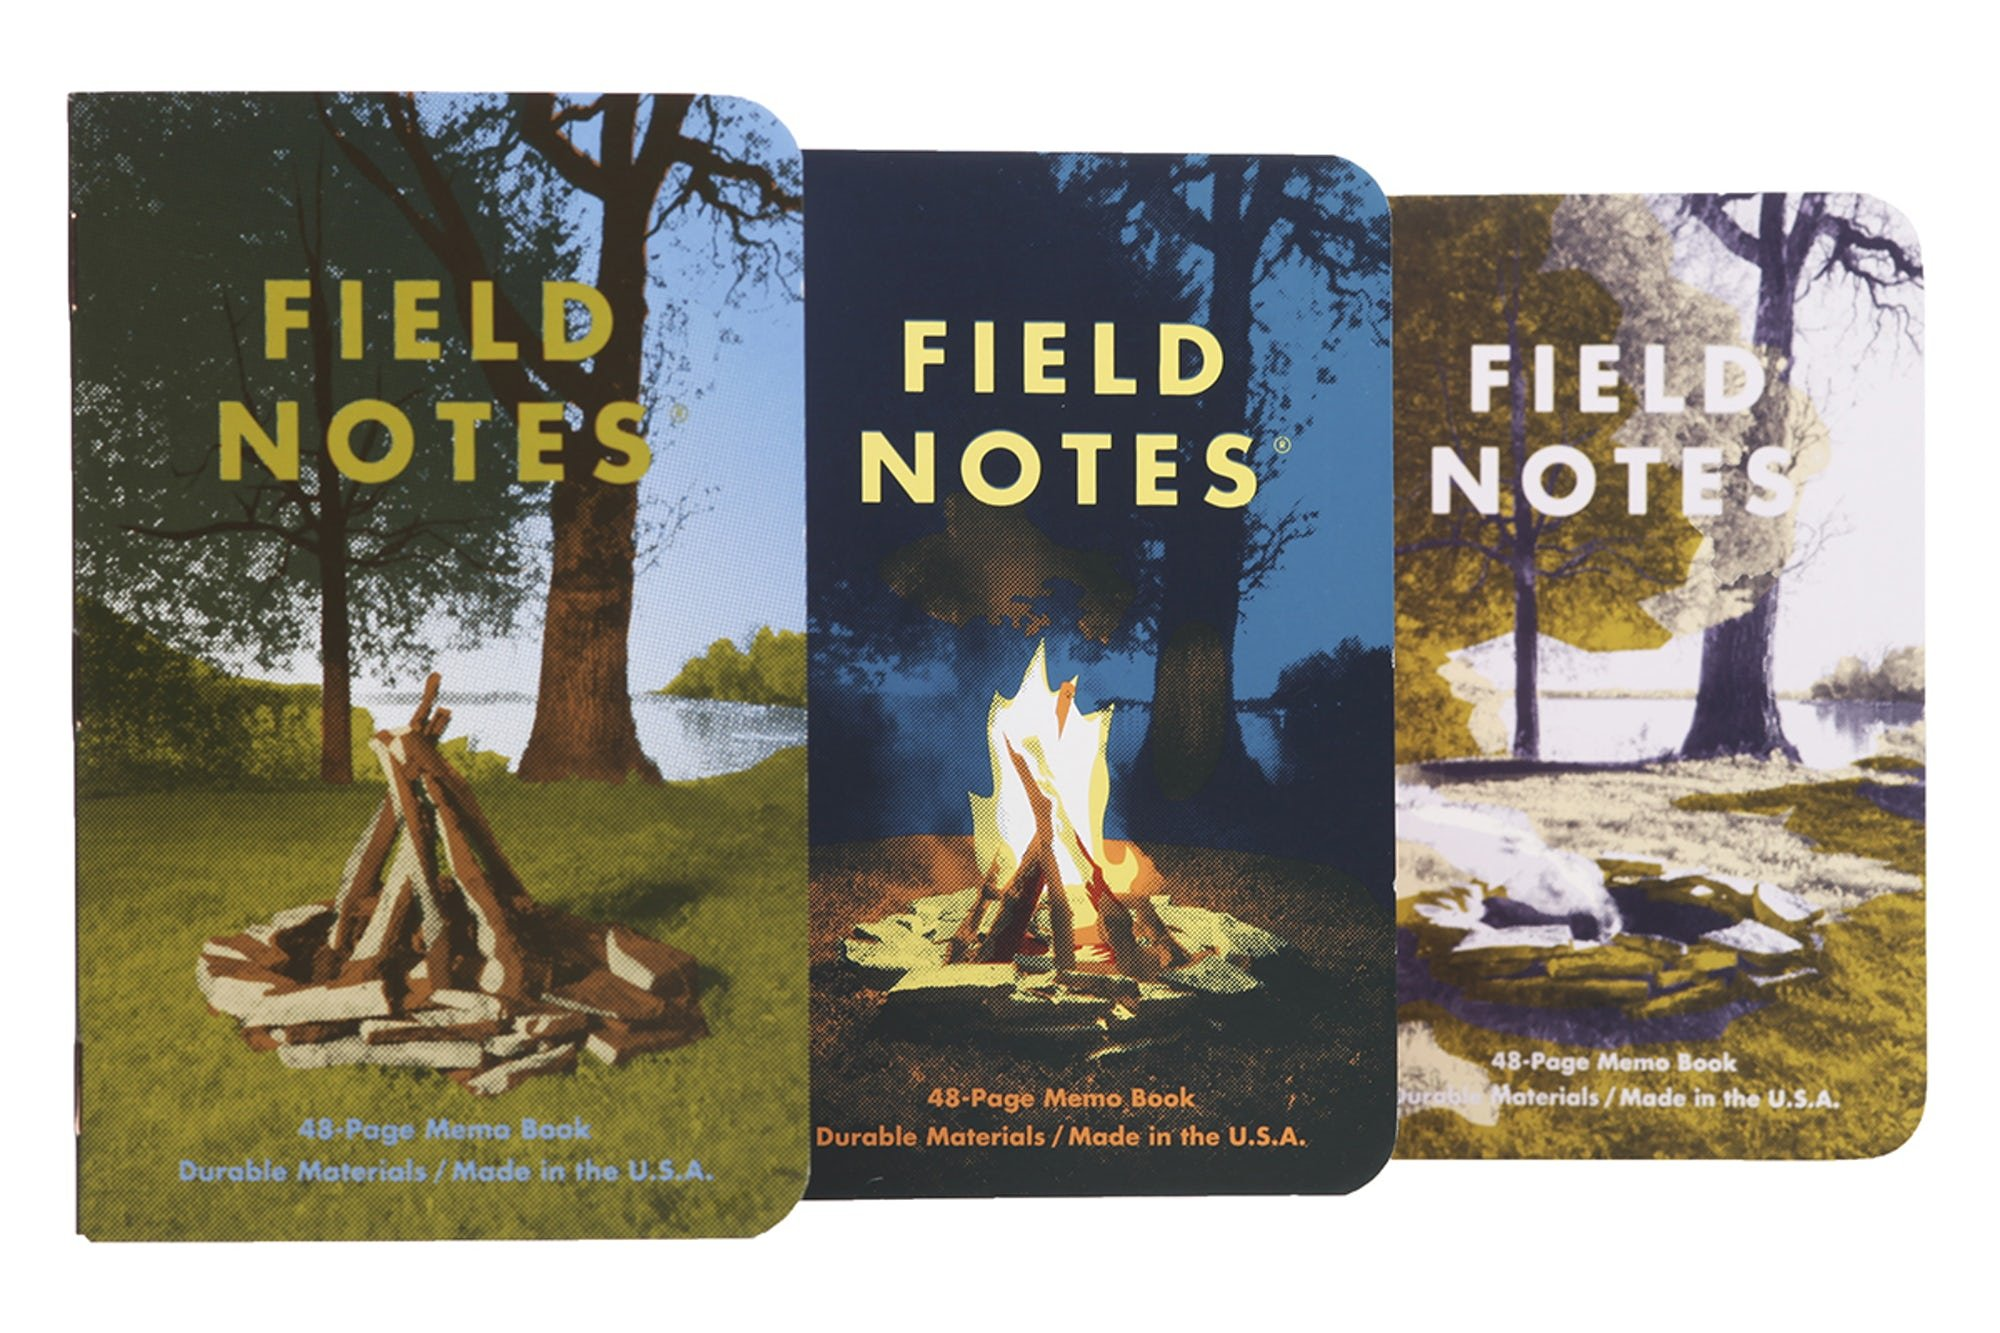 Field Notes Campfire Special Edition Memo Books, 3-Pack (3.5x5.5-Inch) Summer 2017